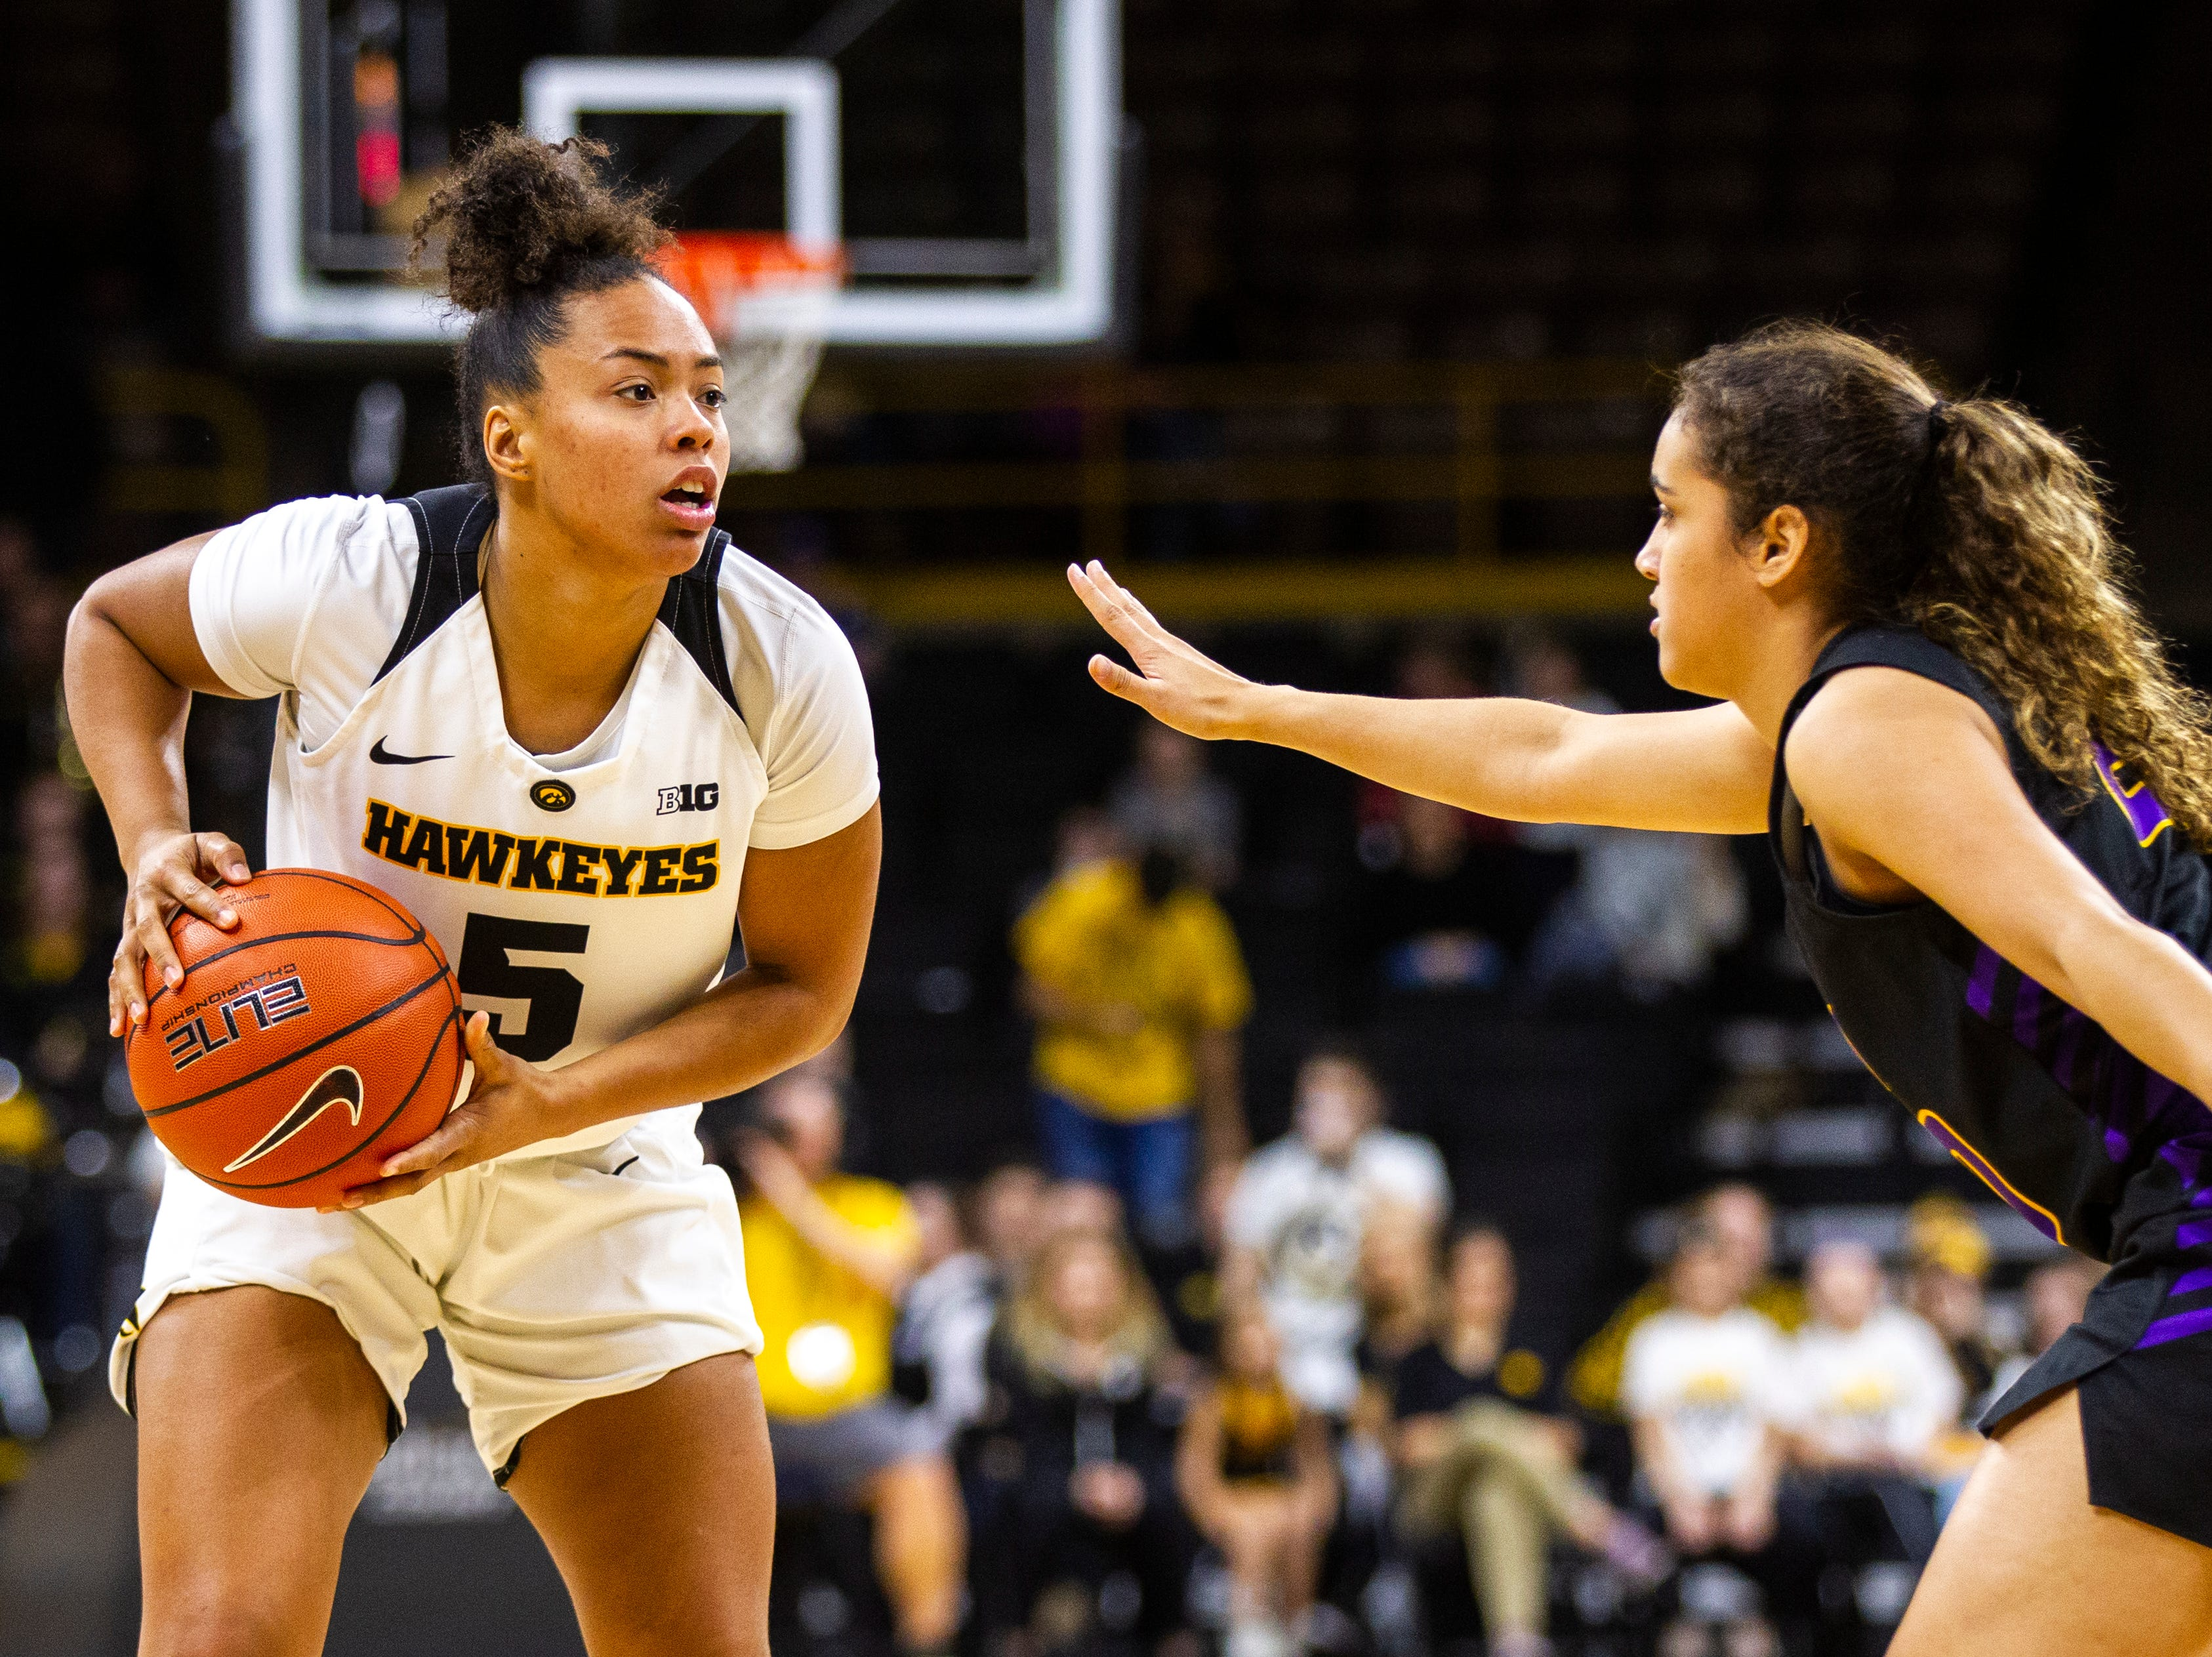 Iowa guard Alexis Sevillian (5) gets defended by Northern Iowa guard Alyssa Iverson (20) during a NCAA women's basketball game on Sunday, Dec. 16, 2018, at Carver-Hawkeye Arena in Iowa City.